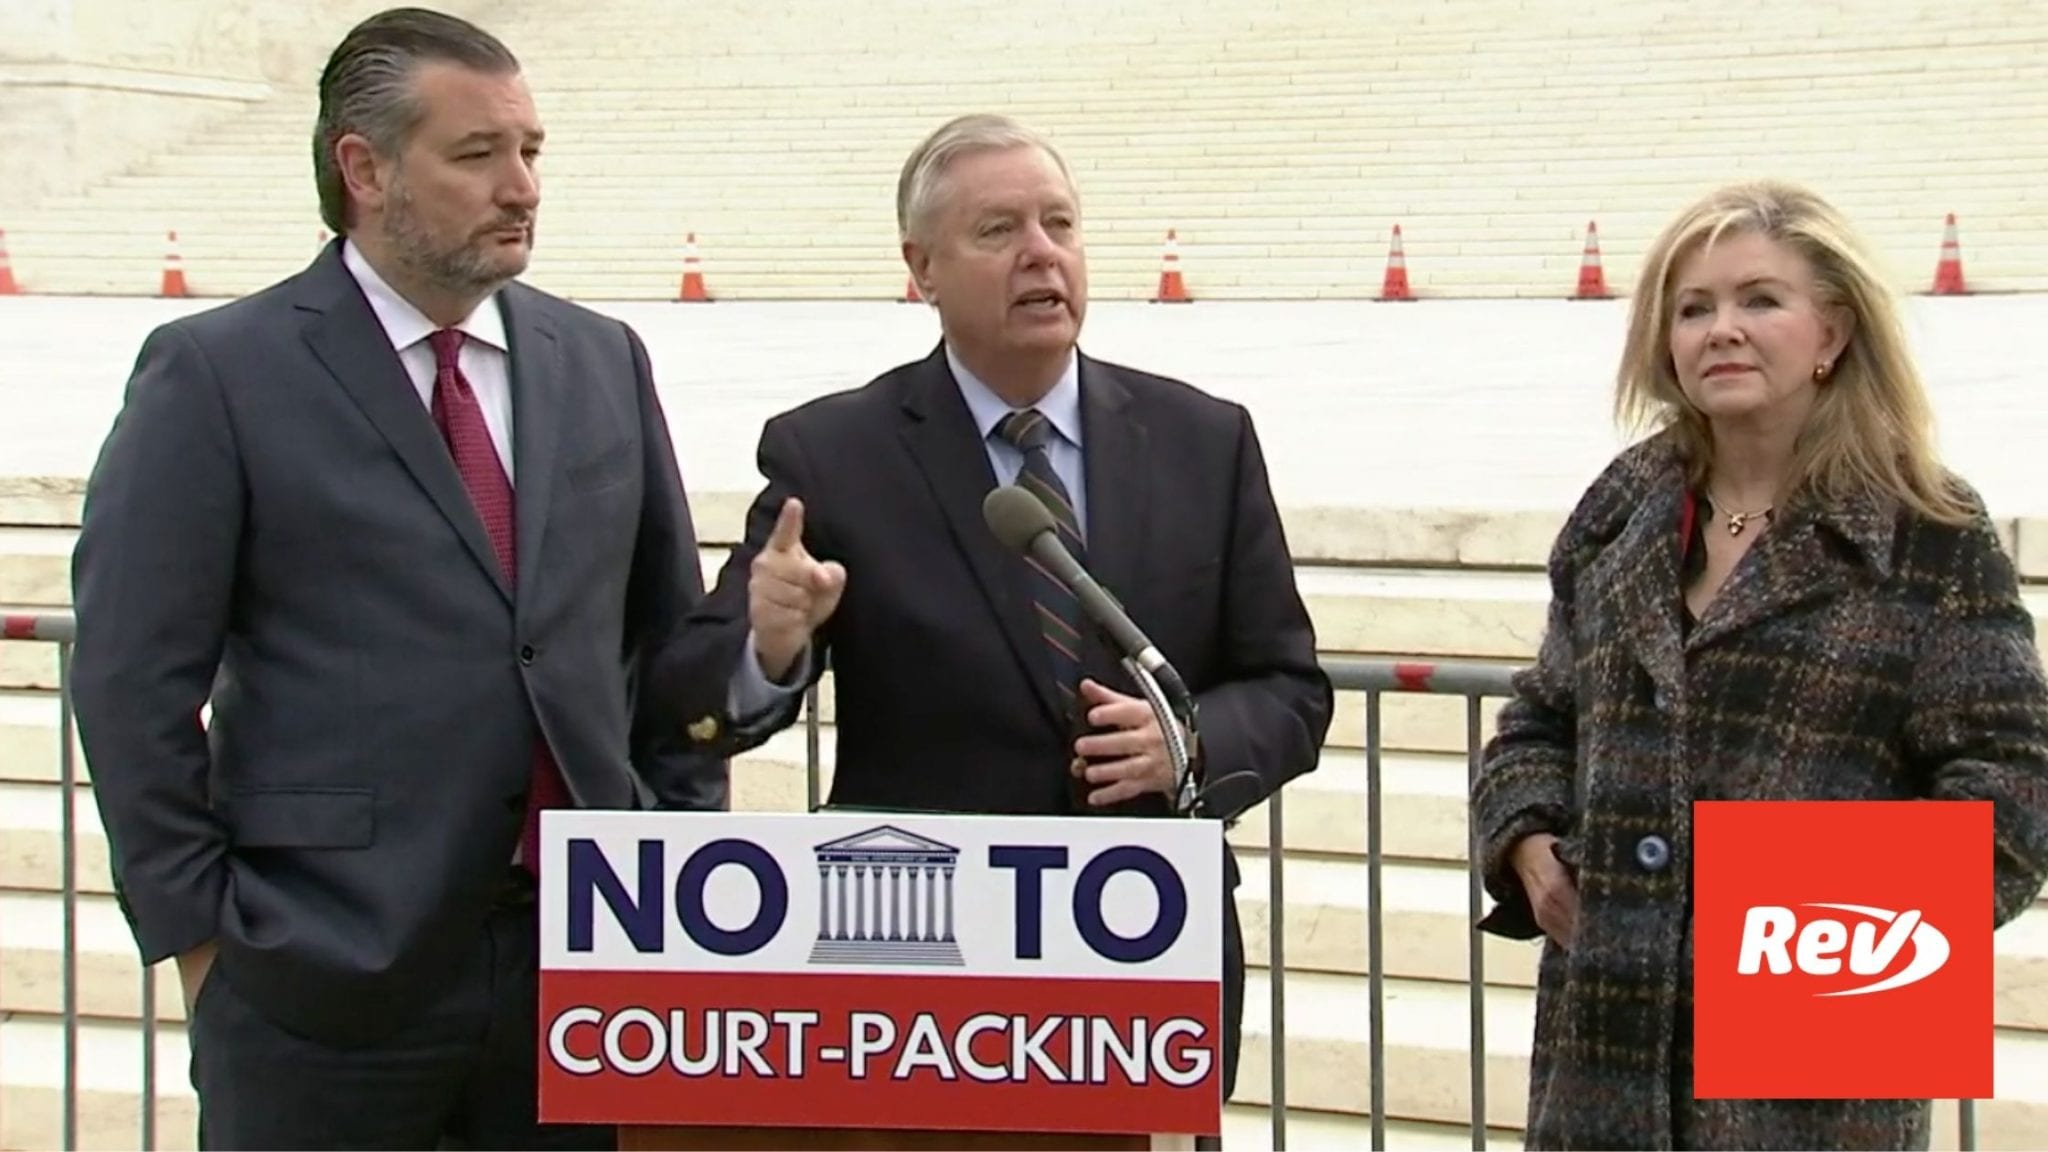 Ted Cruz, Lindsey Graham Press Conference on Supreme Court Expansion Transcript April 22